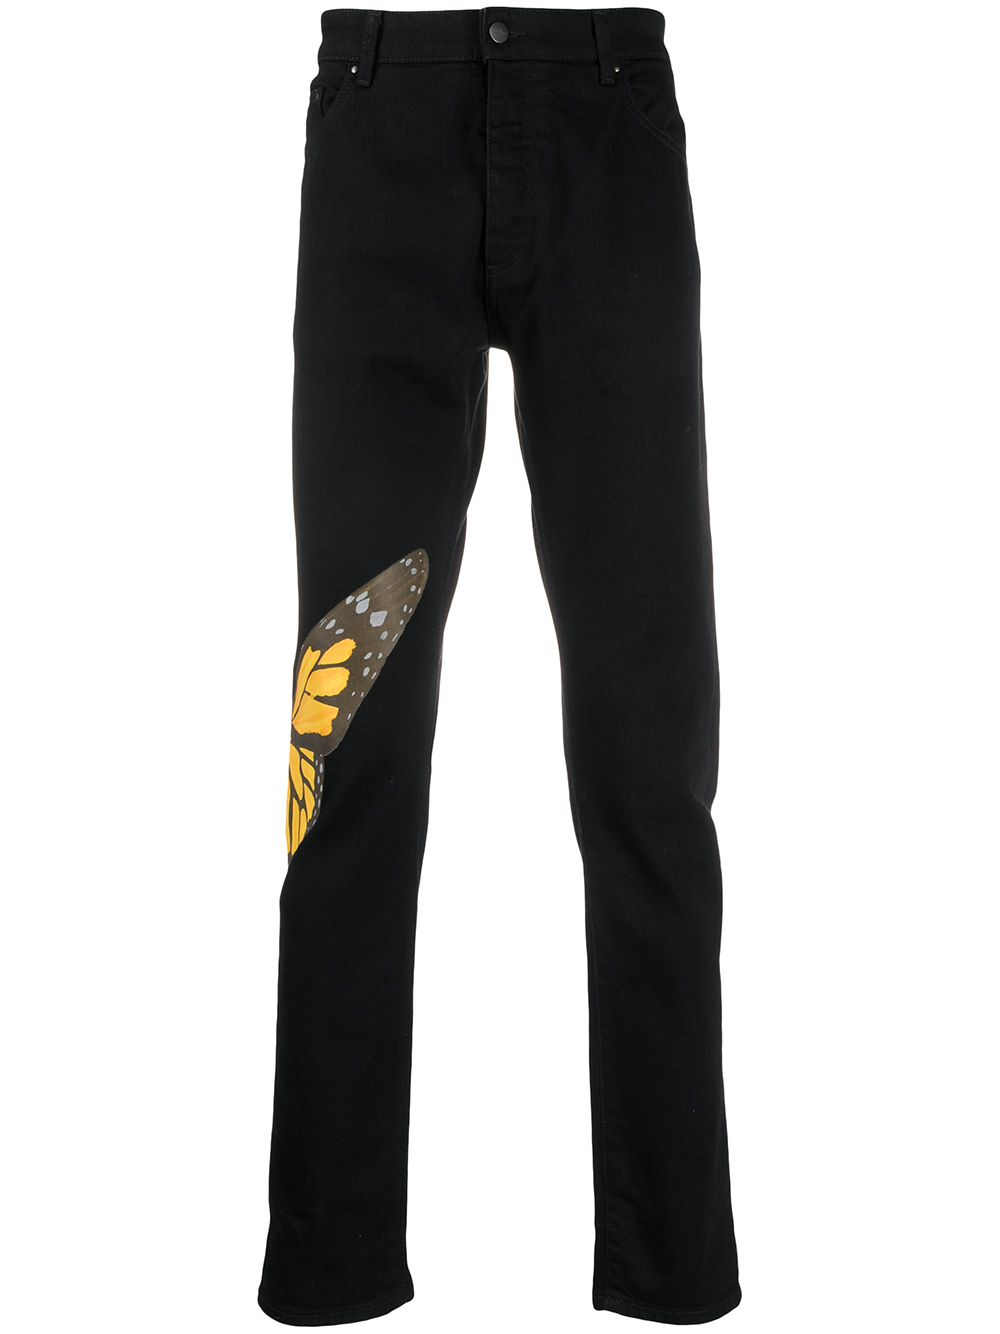 PALM ANGELS Wing Jeans Black - Maison De Fashion